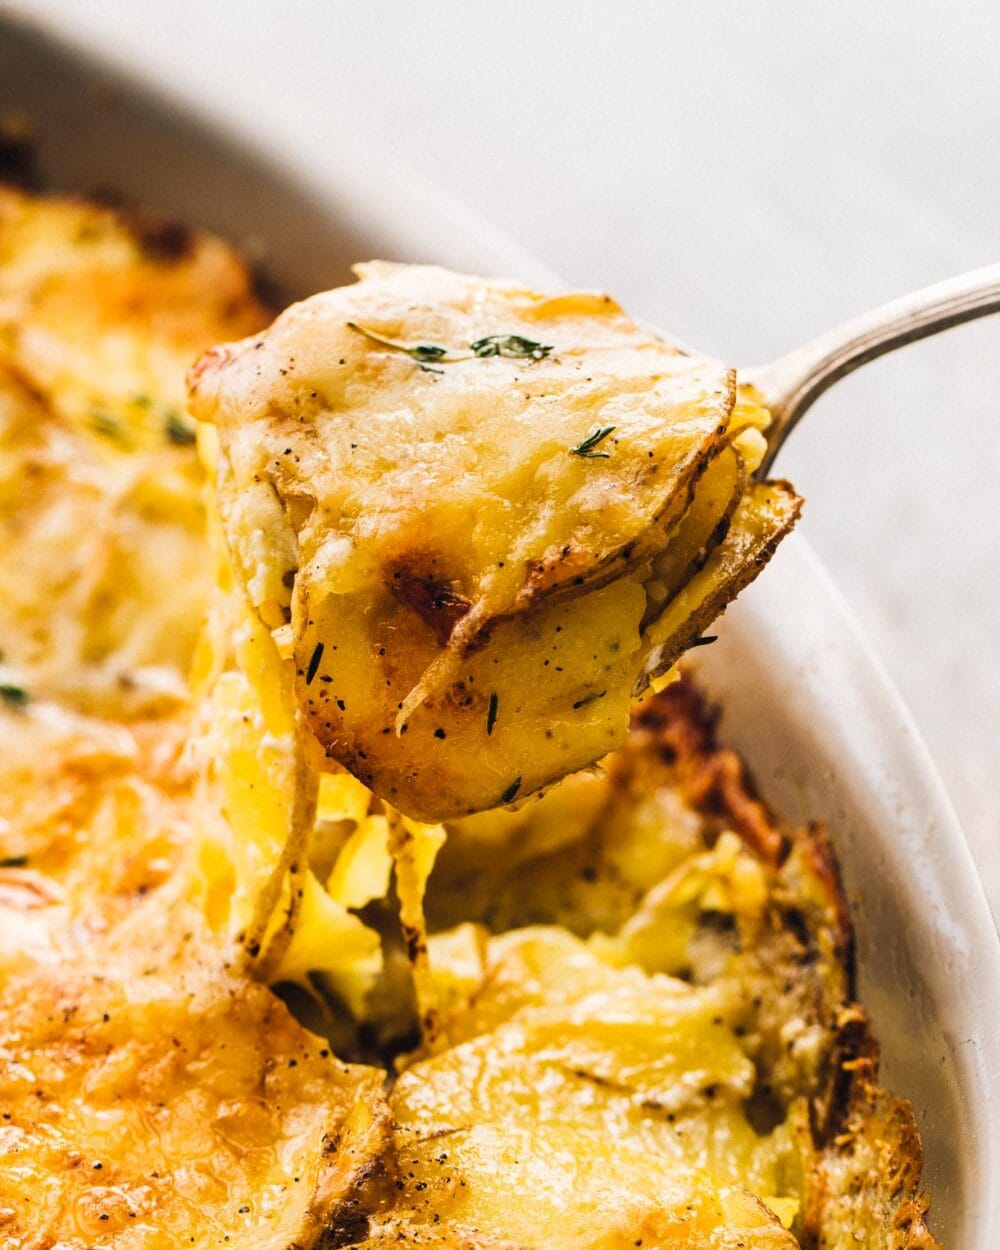 au gratin potatoes being scooped with a spoon